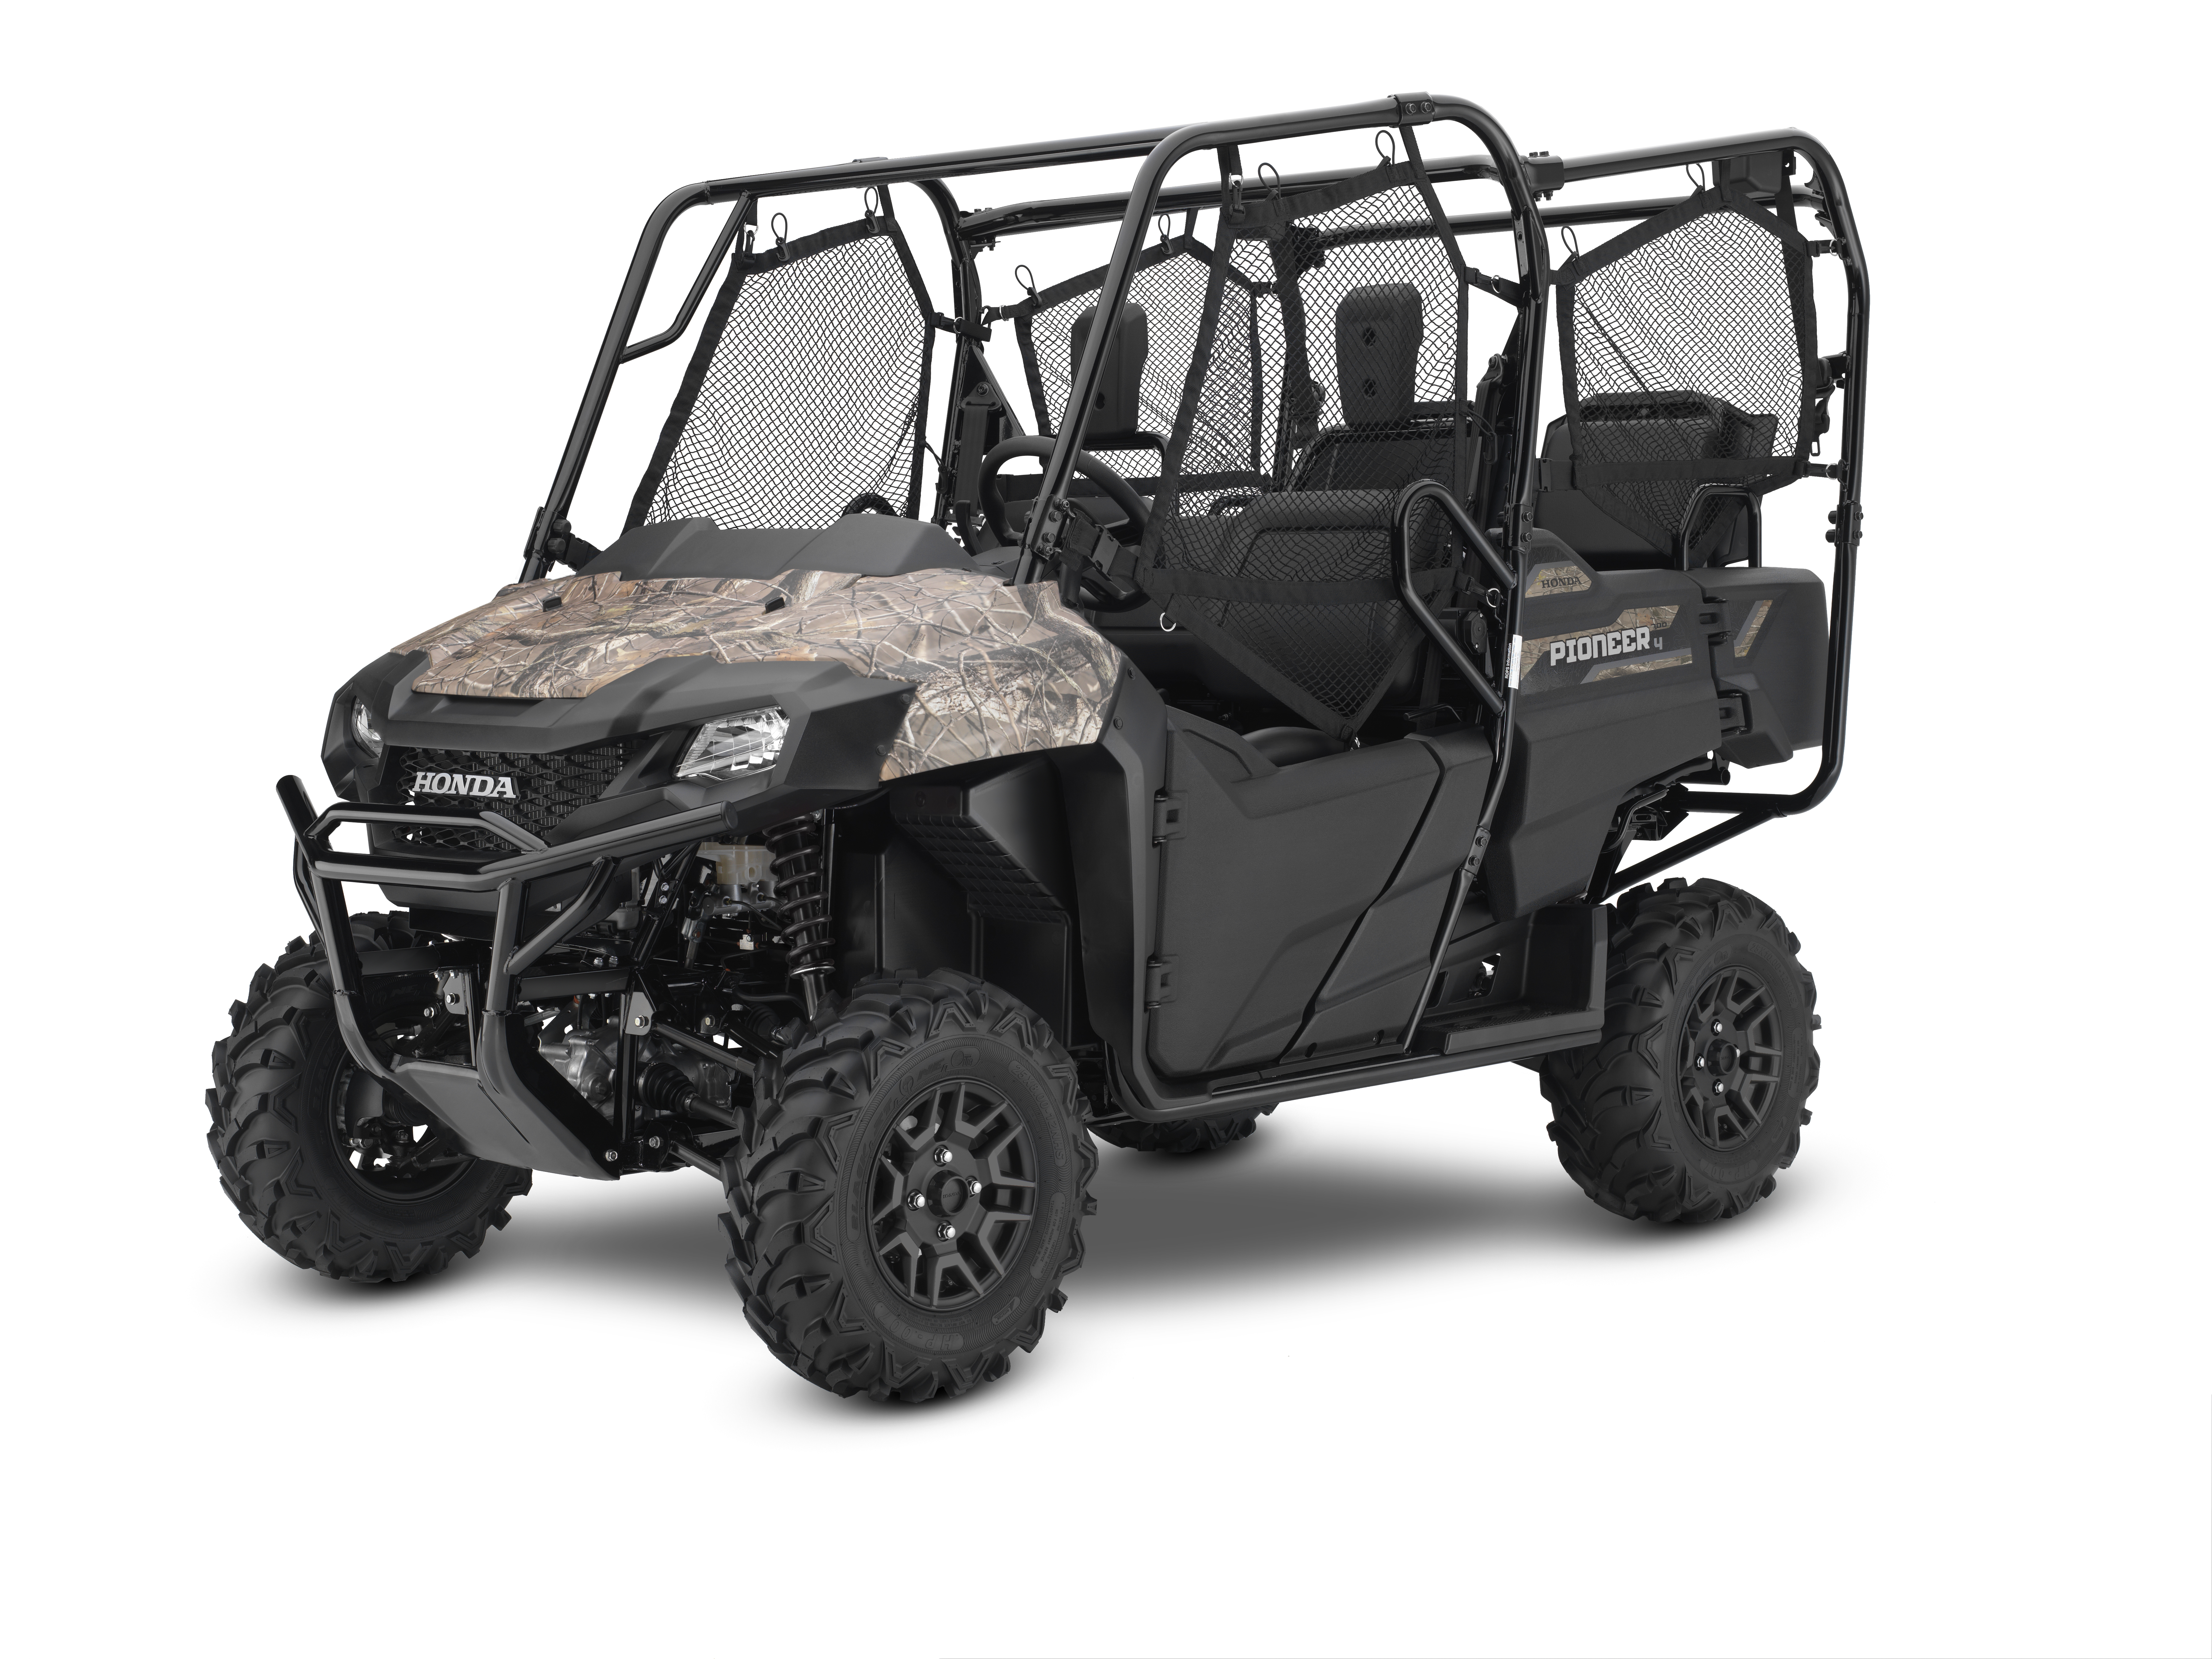 2017 Honda Pioneer 700 and 500 great new upgrades